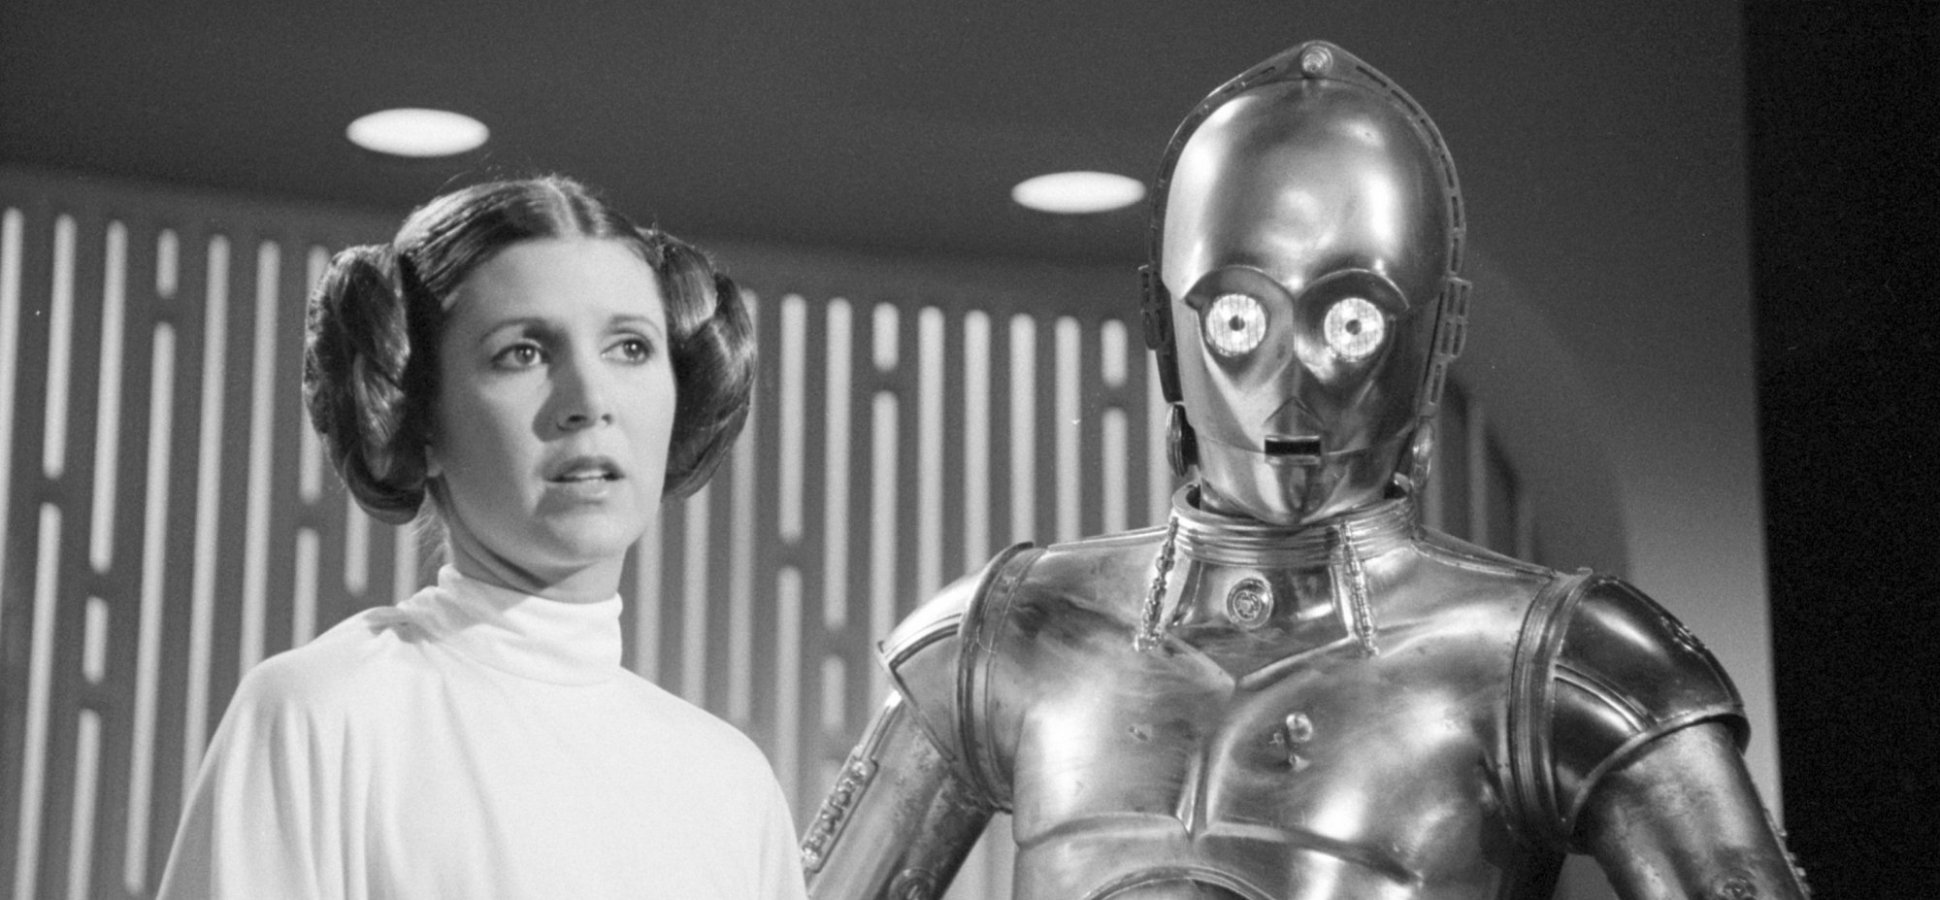 12 Quotes from Star Wars Great Carrie Fisher That Will Inspire You to Push Forward Through the Galaxy